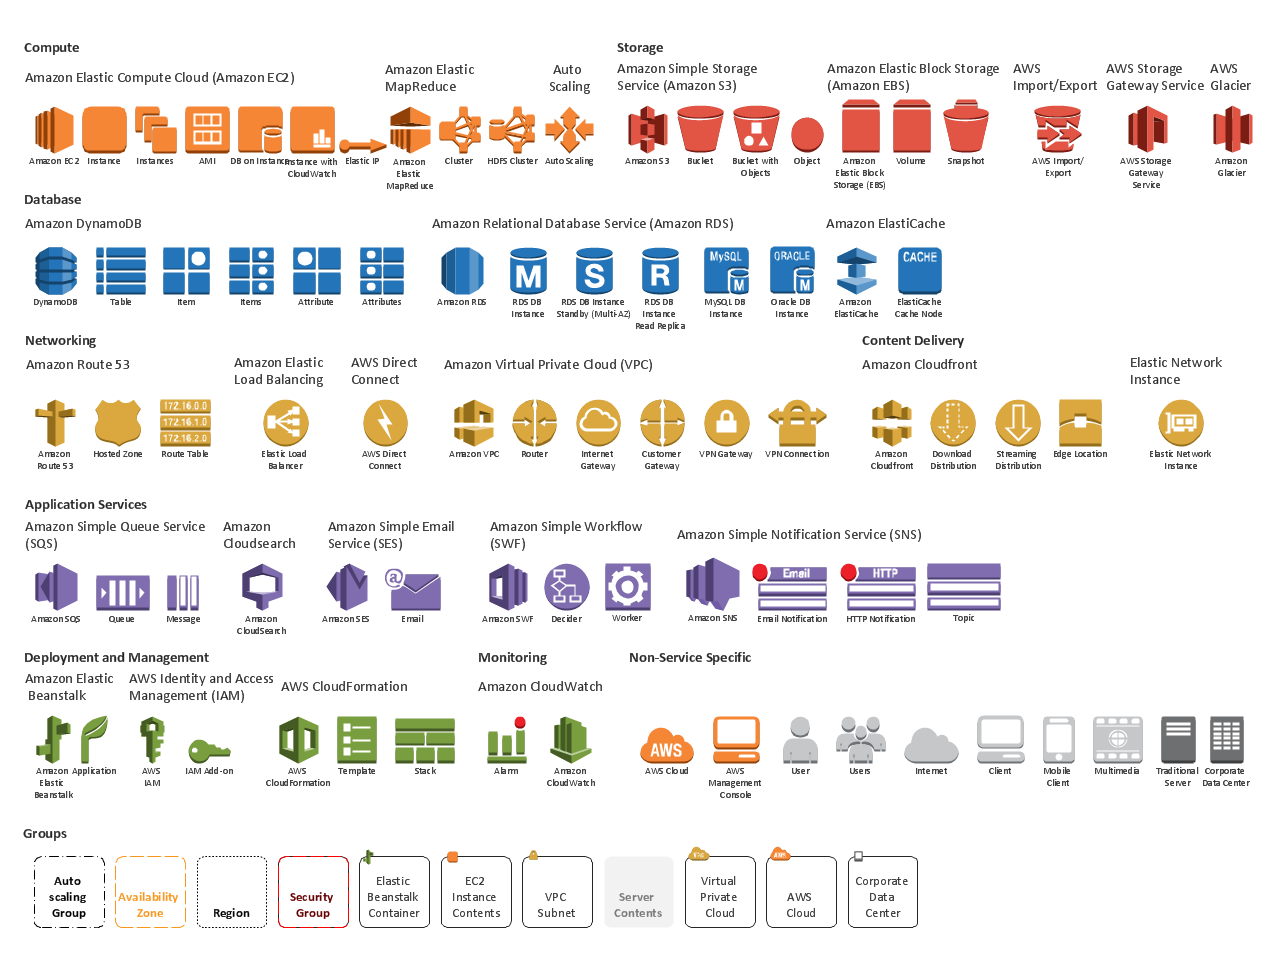 aws services overview